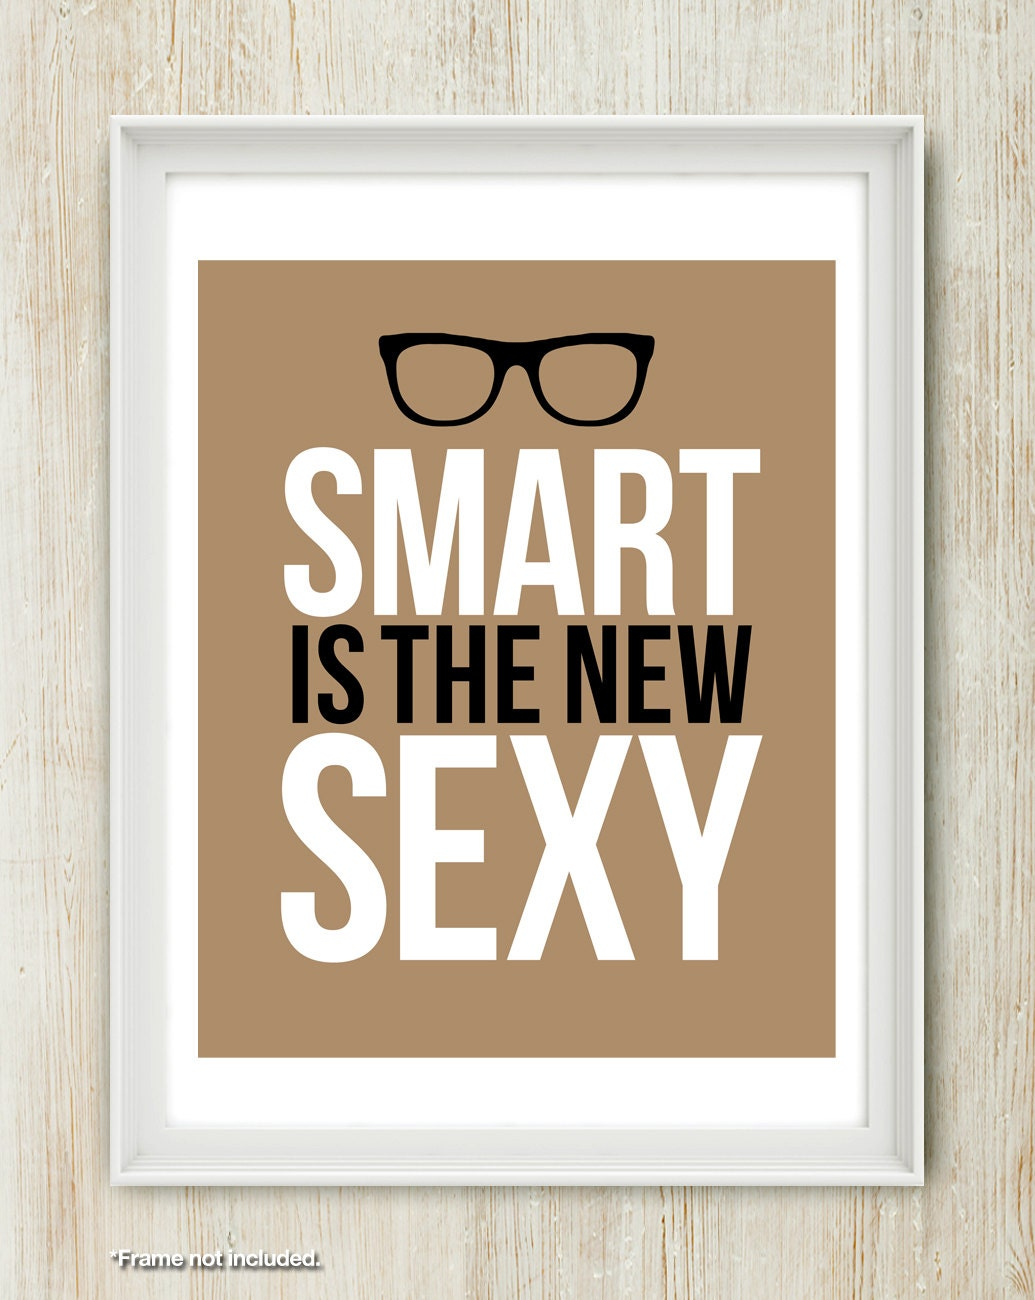 Smart is the new sexy foto 83